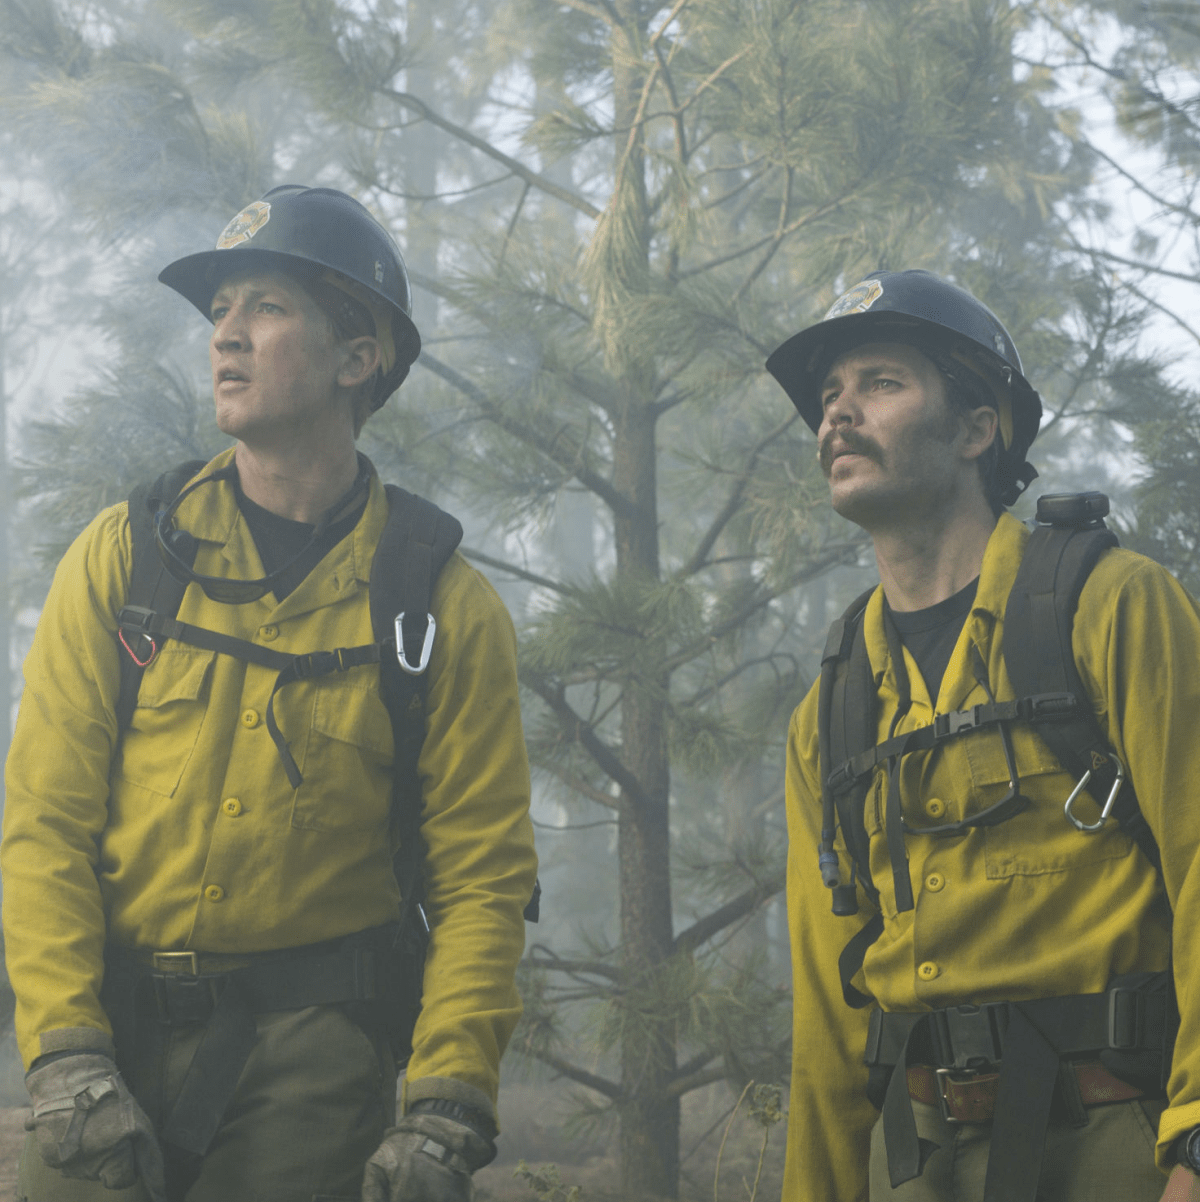 Miles Teller and Taylor Kitsch in Only the Brave